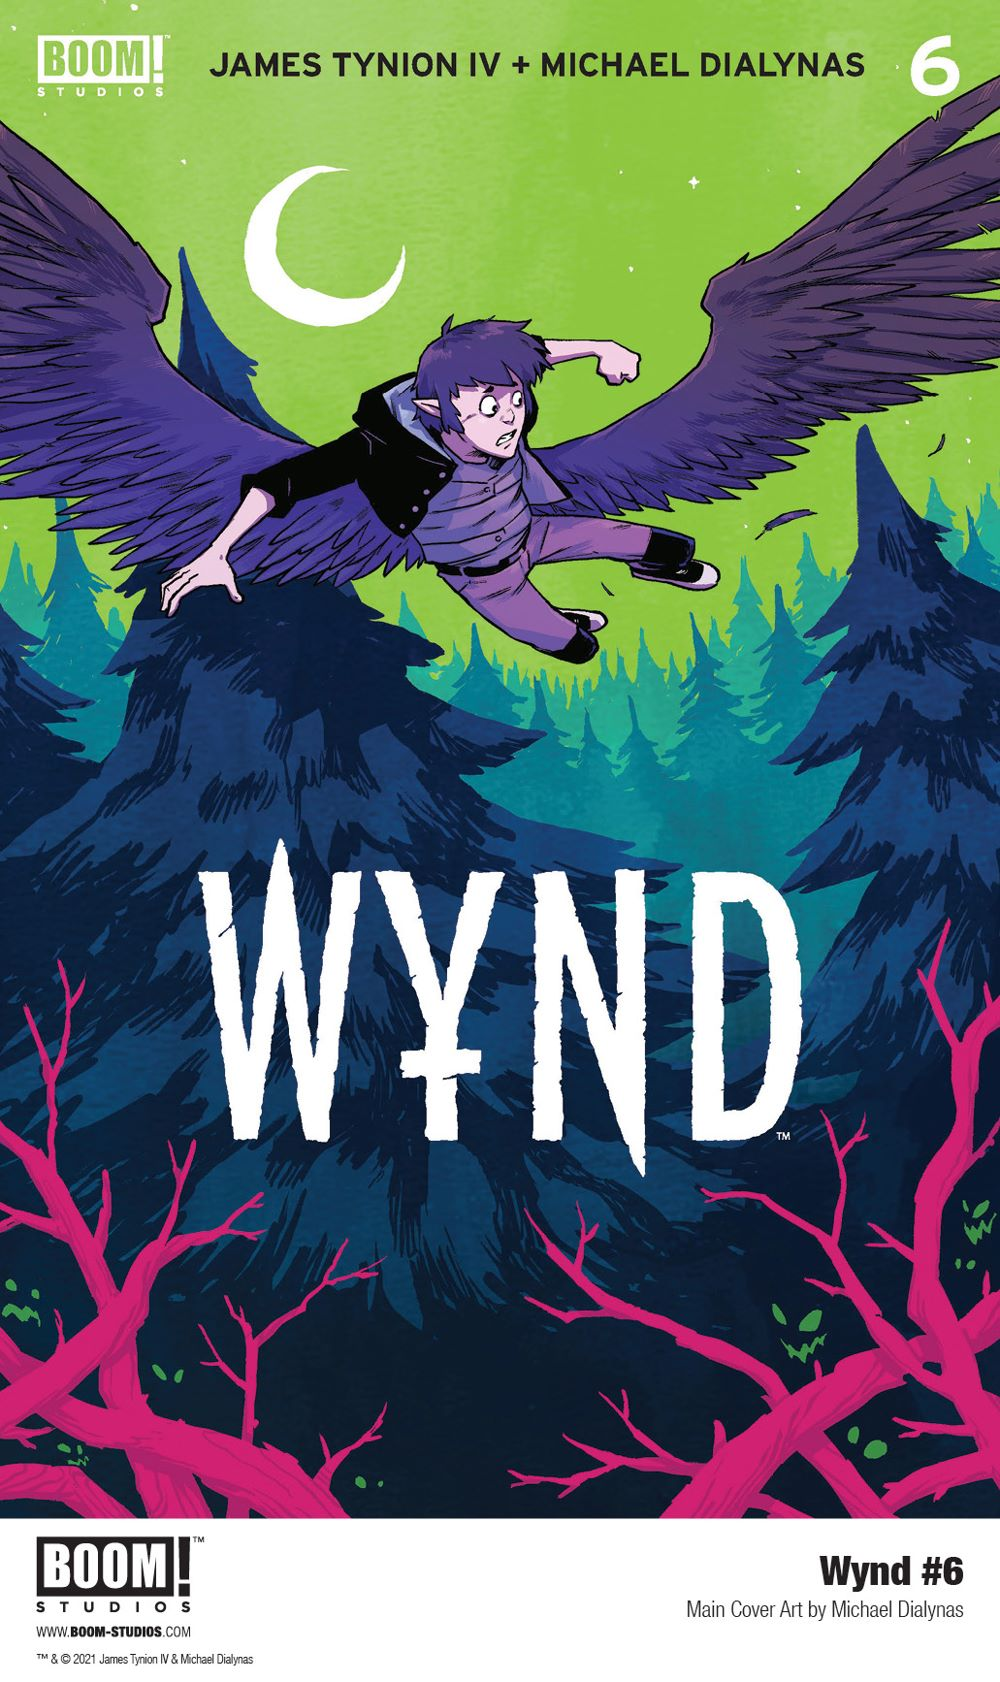 Wynd_006_Cover_Main_PROMO-2 First Look at BOOM! Studios' WYND #6